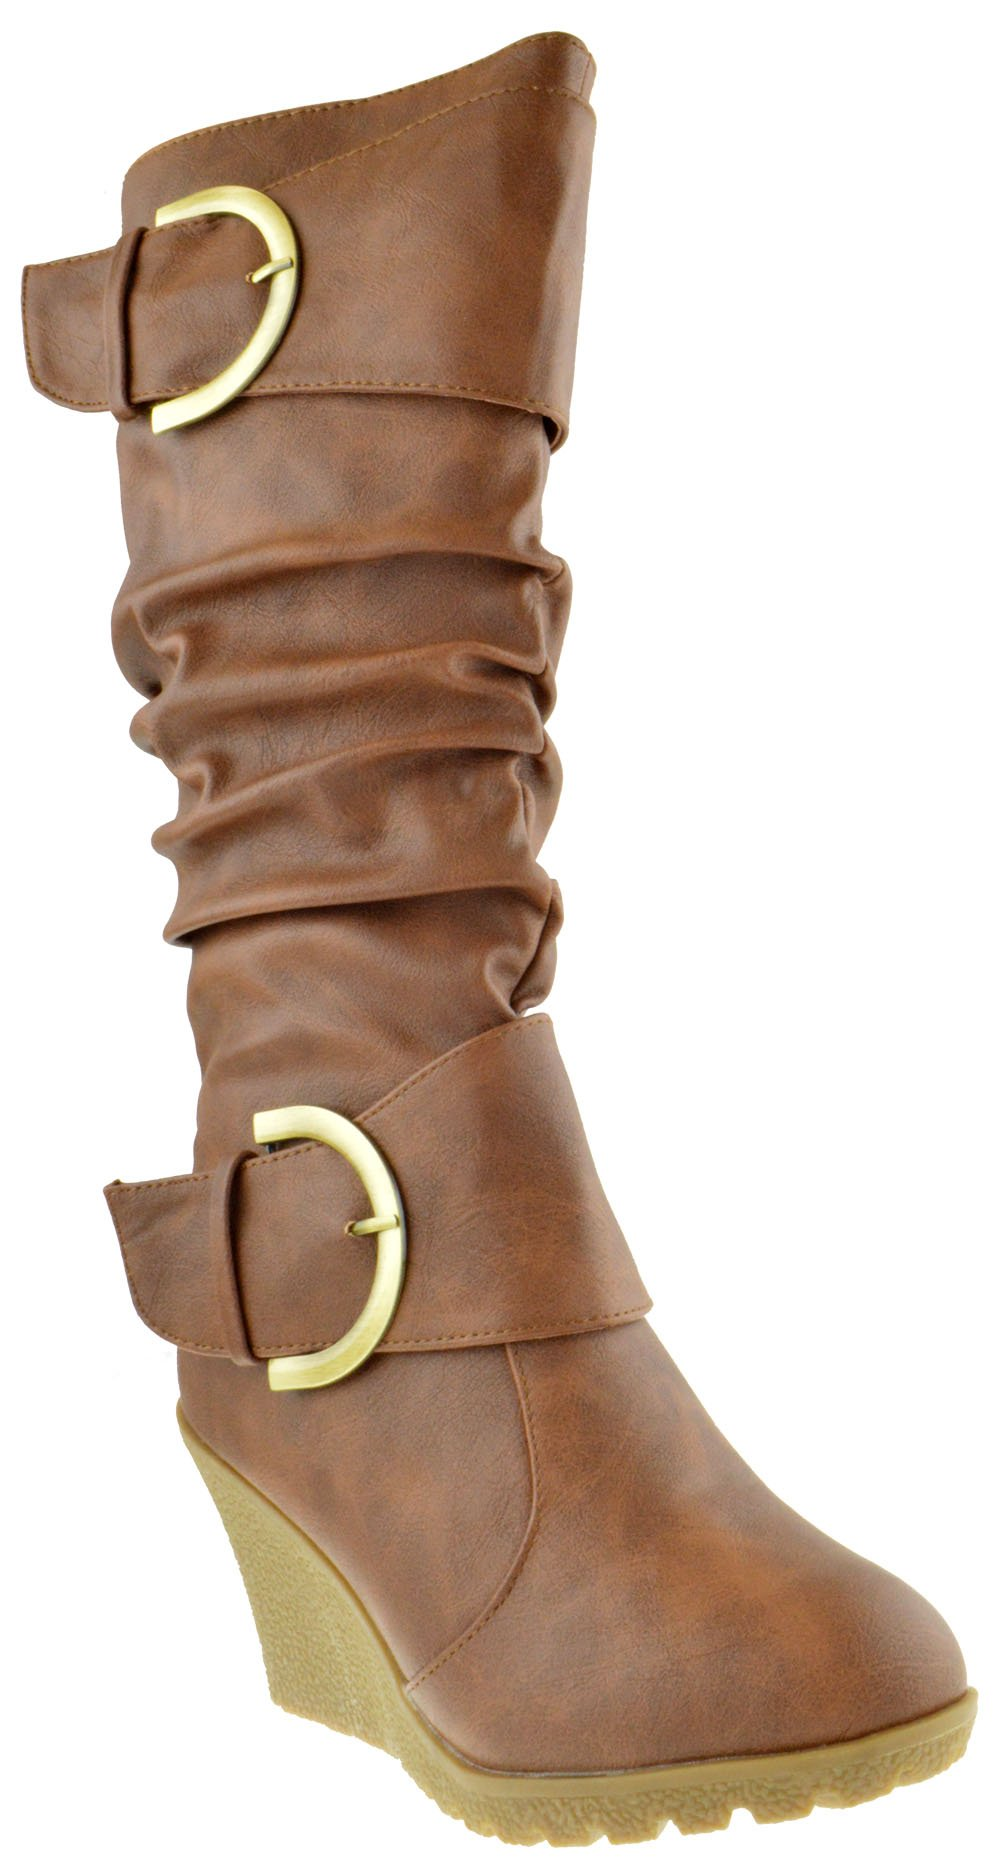 Top Moda Pure 65 Womens Slouch Wedge Boots Tan 8